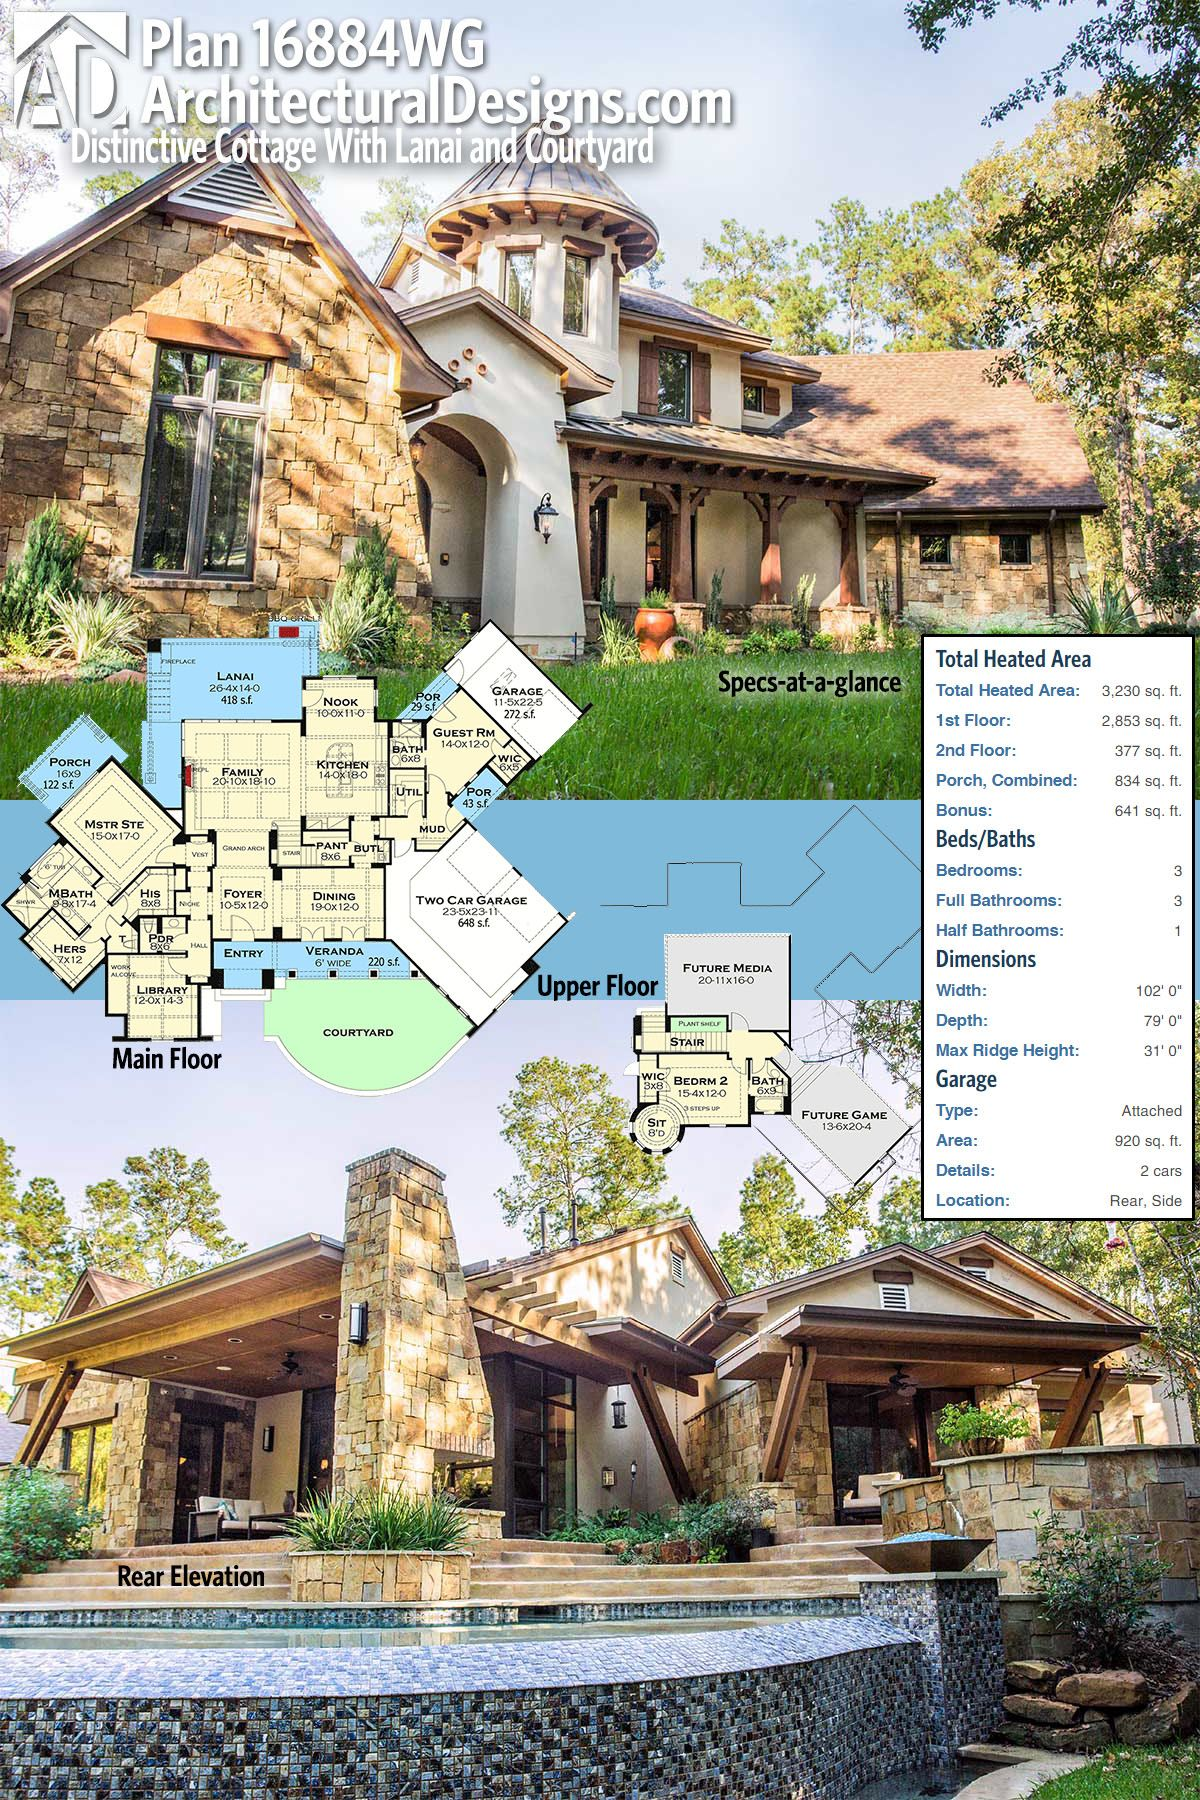 Architectural Designs House Plan 16884WG is a